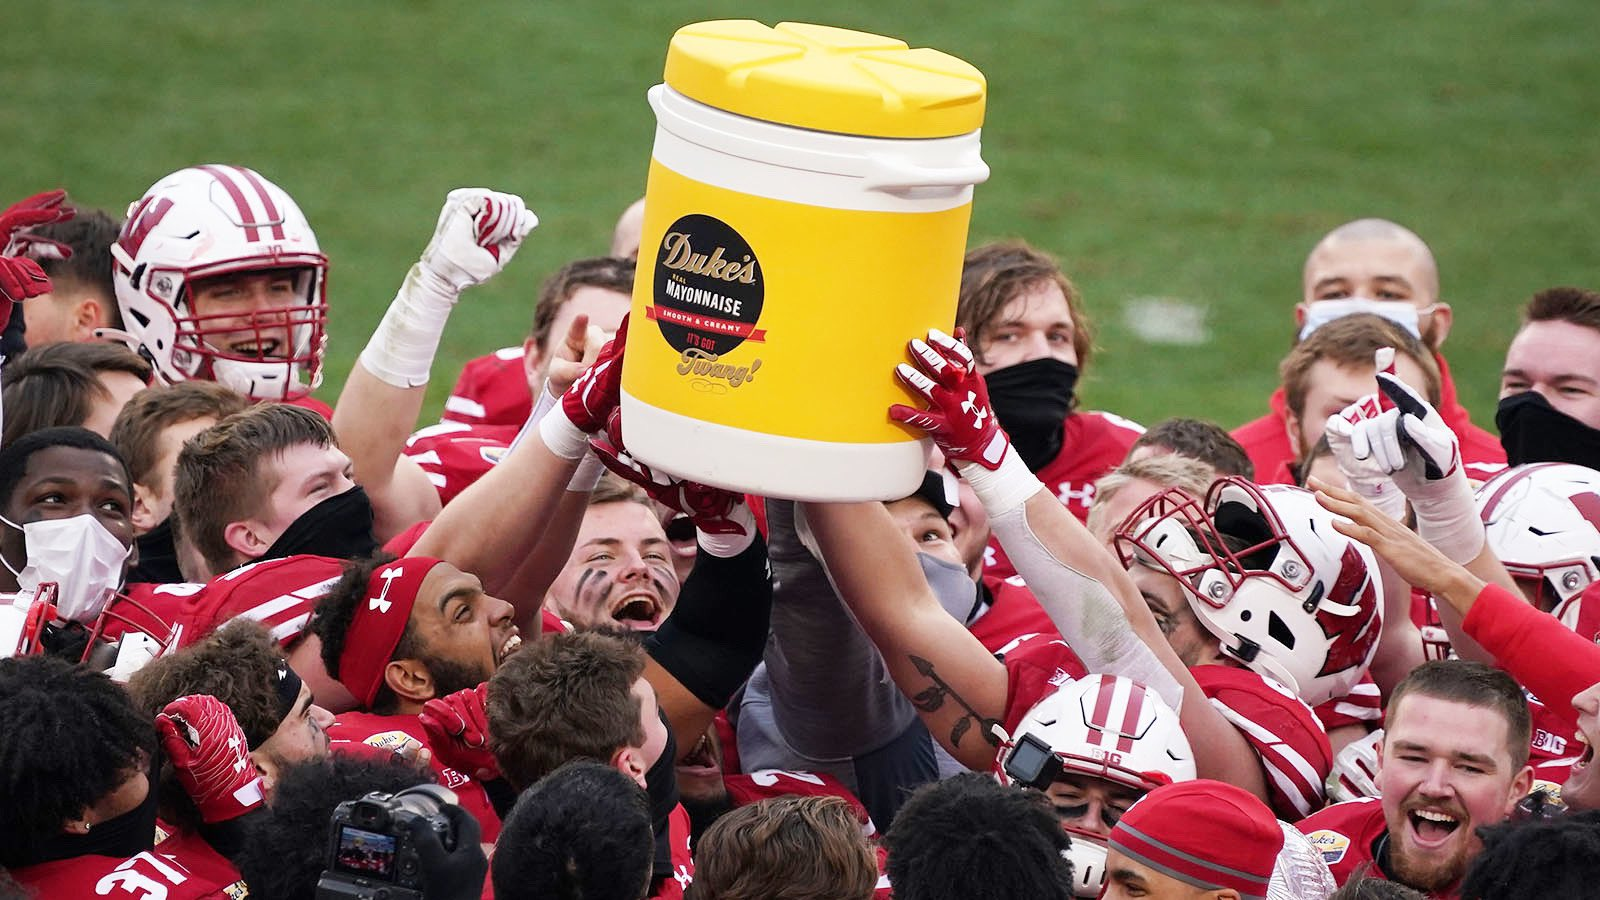 Earlier this year, a relatively unknown mayonnaise brand became the title sponsor of a college football game and ended up going viral.  Outlined a couple reasons why it's an incredible sponsorship story. 👇🏽 https://t.co/hMW5JzJuCt